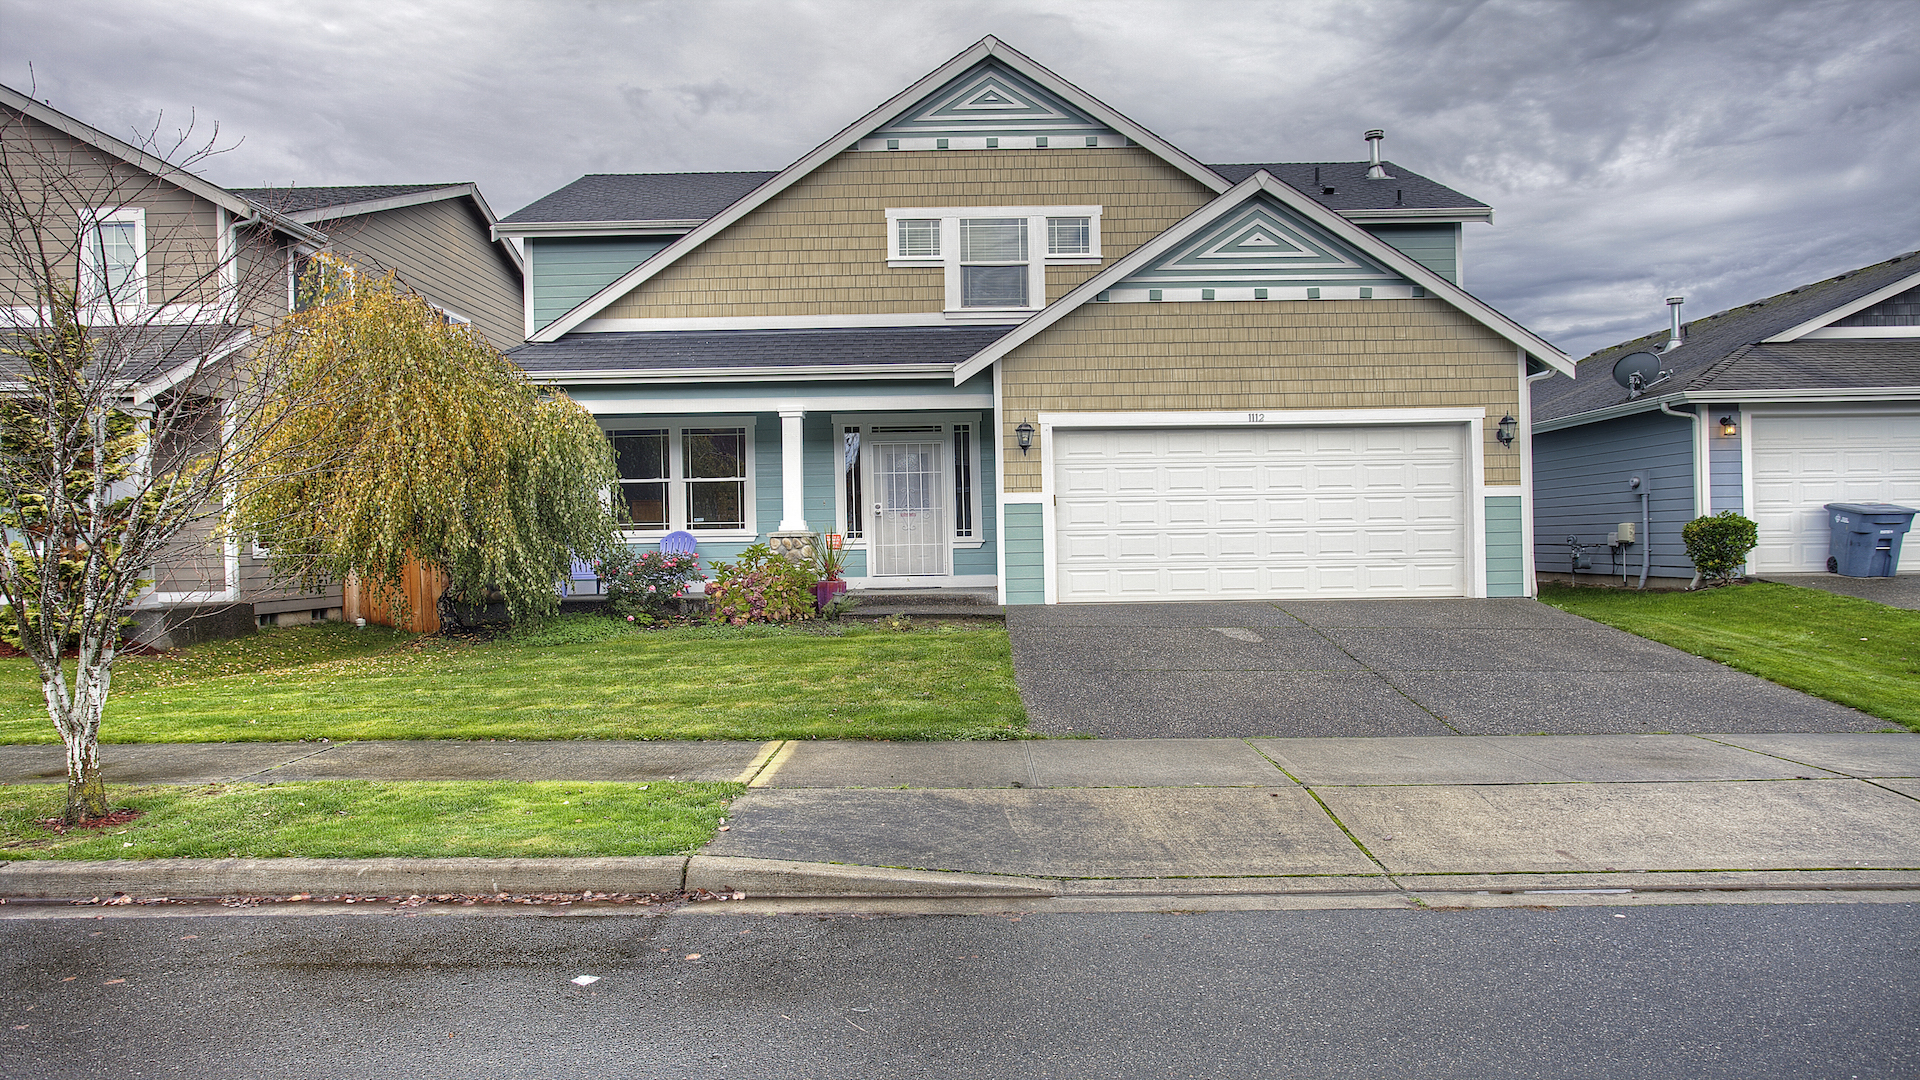 1112 Eagle Ave Sw, Orting, WA - USA (photo 1)